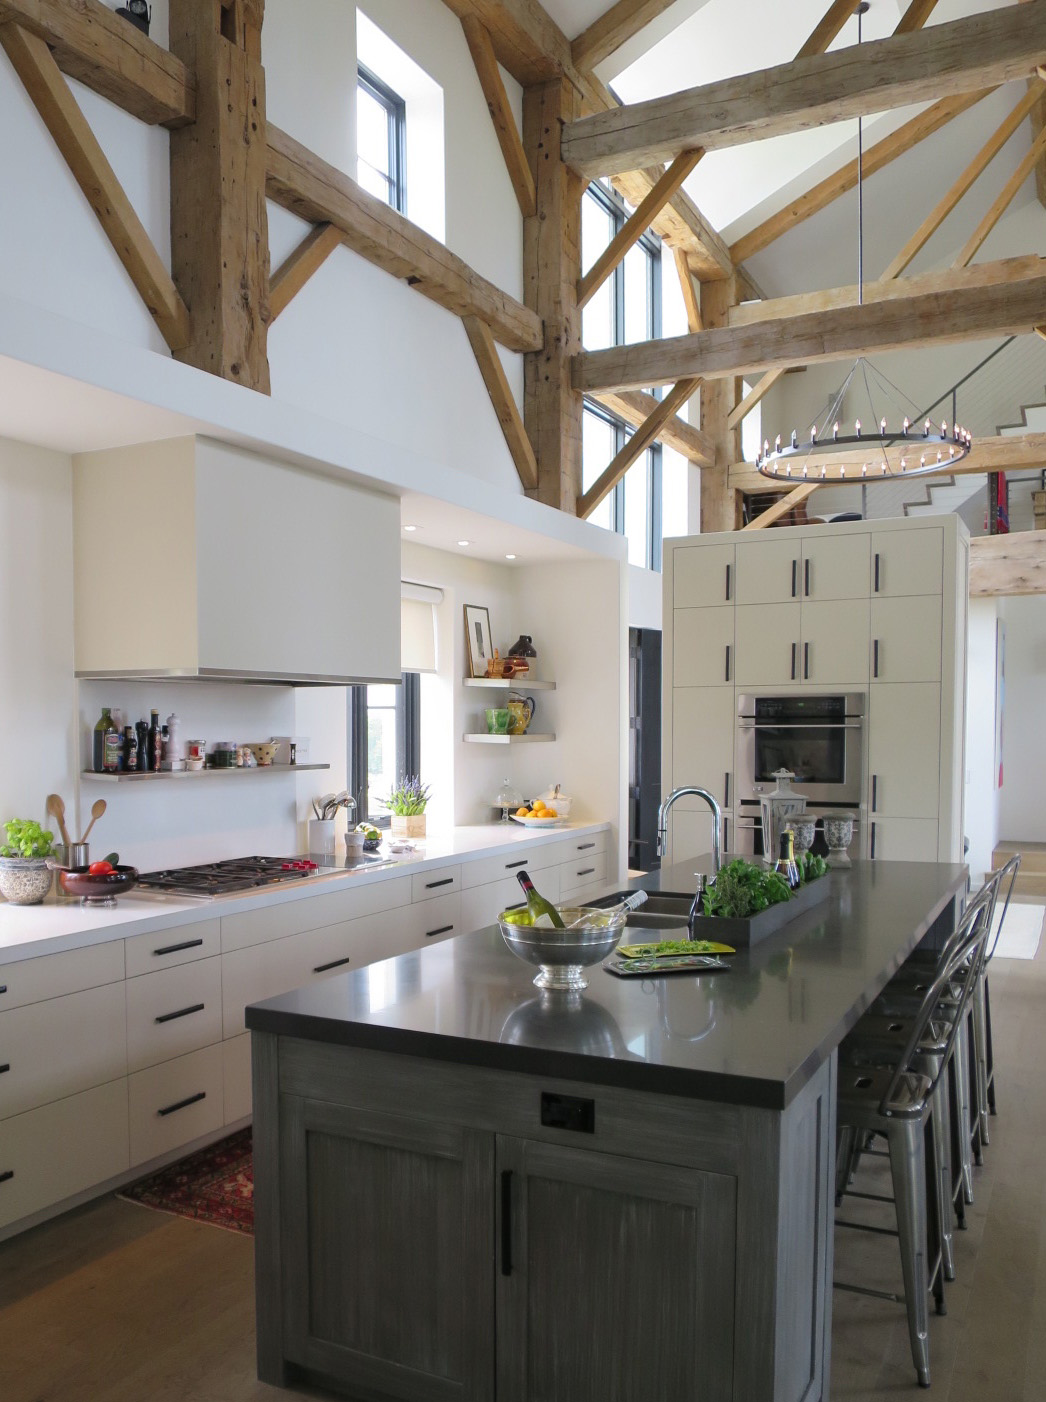 Barn Kitchen Island and appliance wall by Rowlands Associates